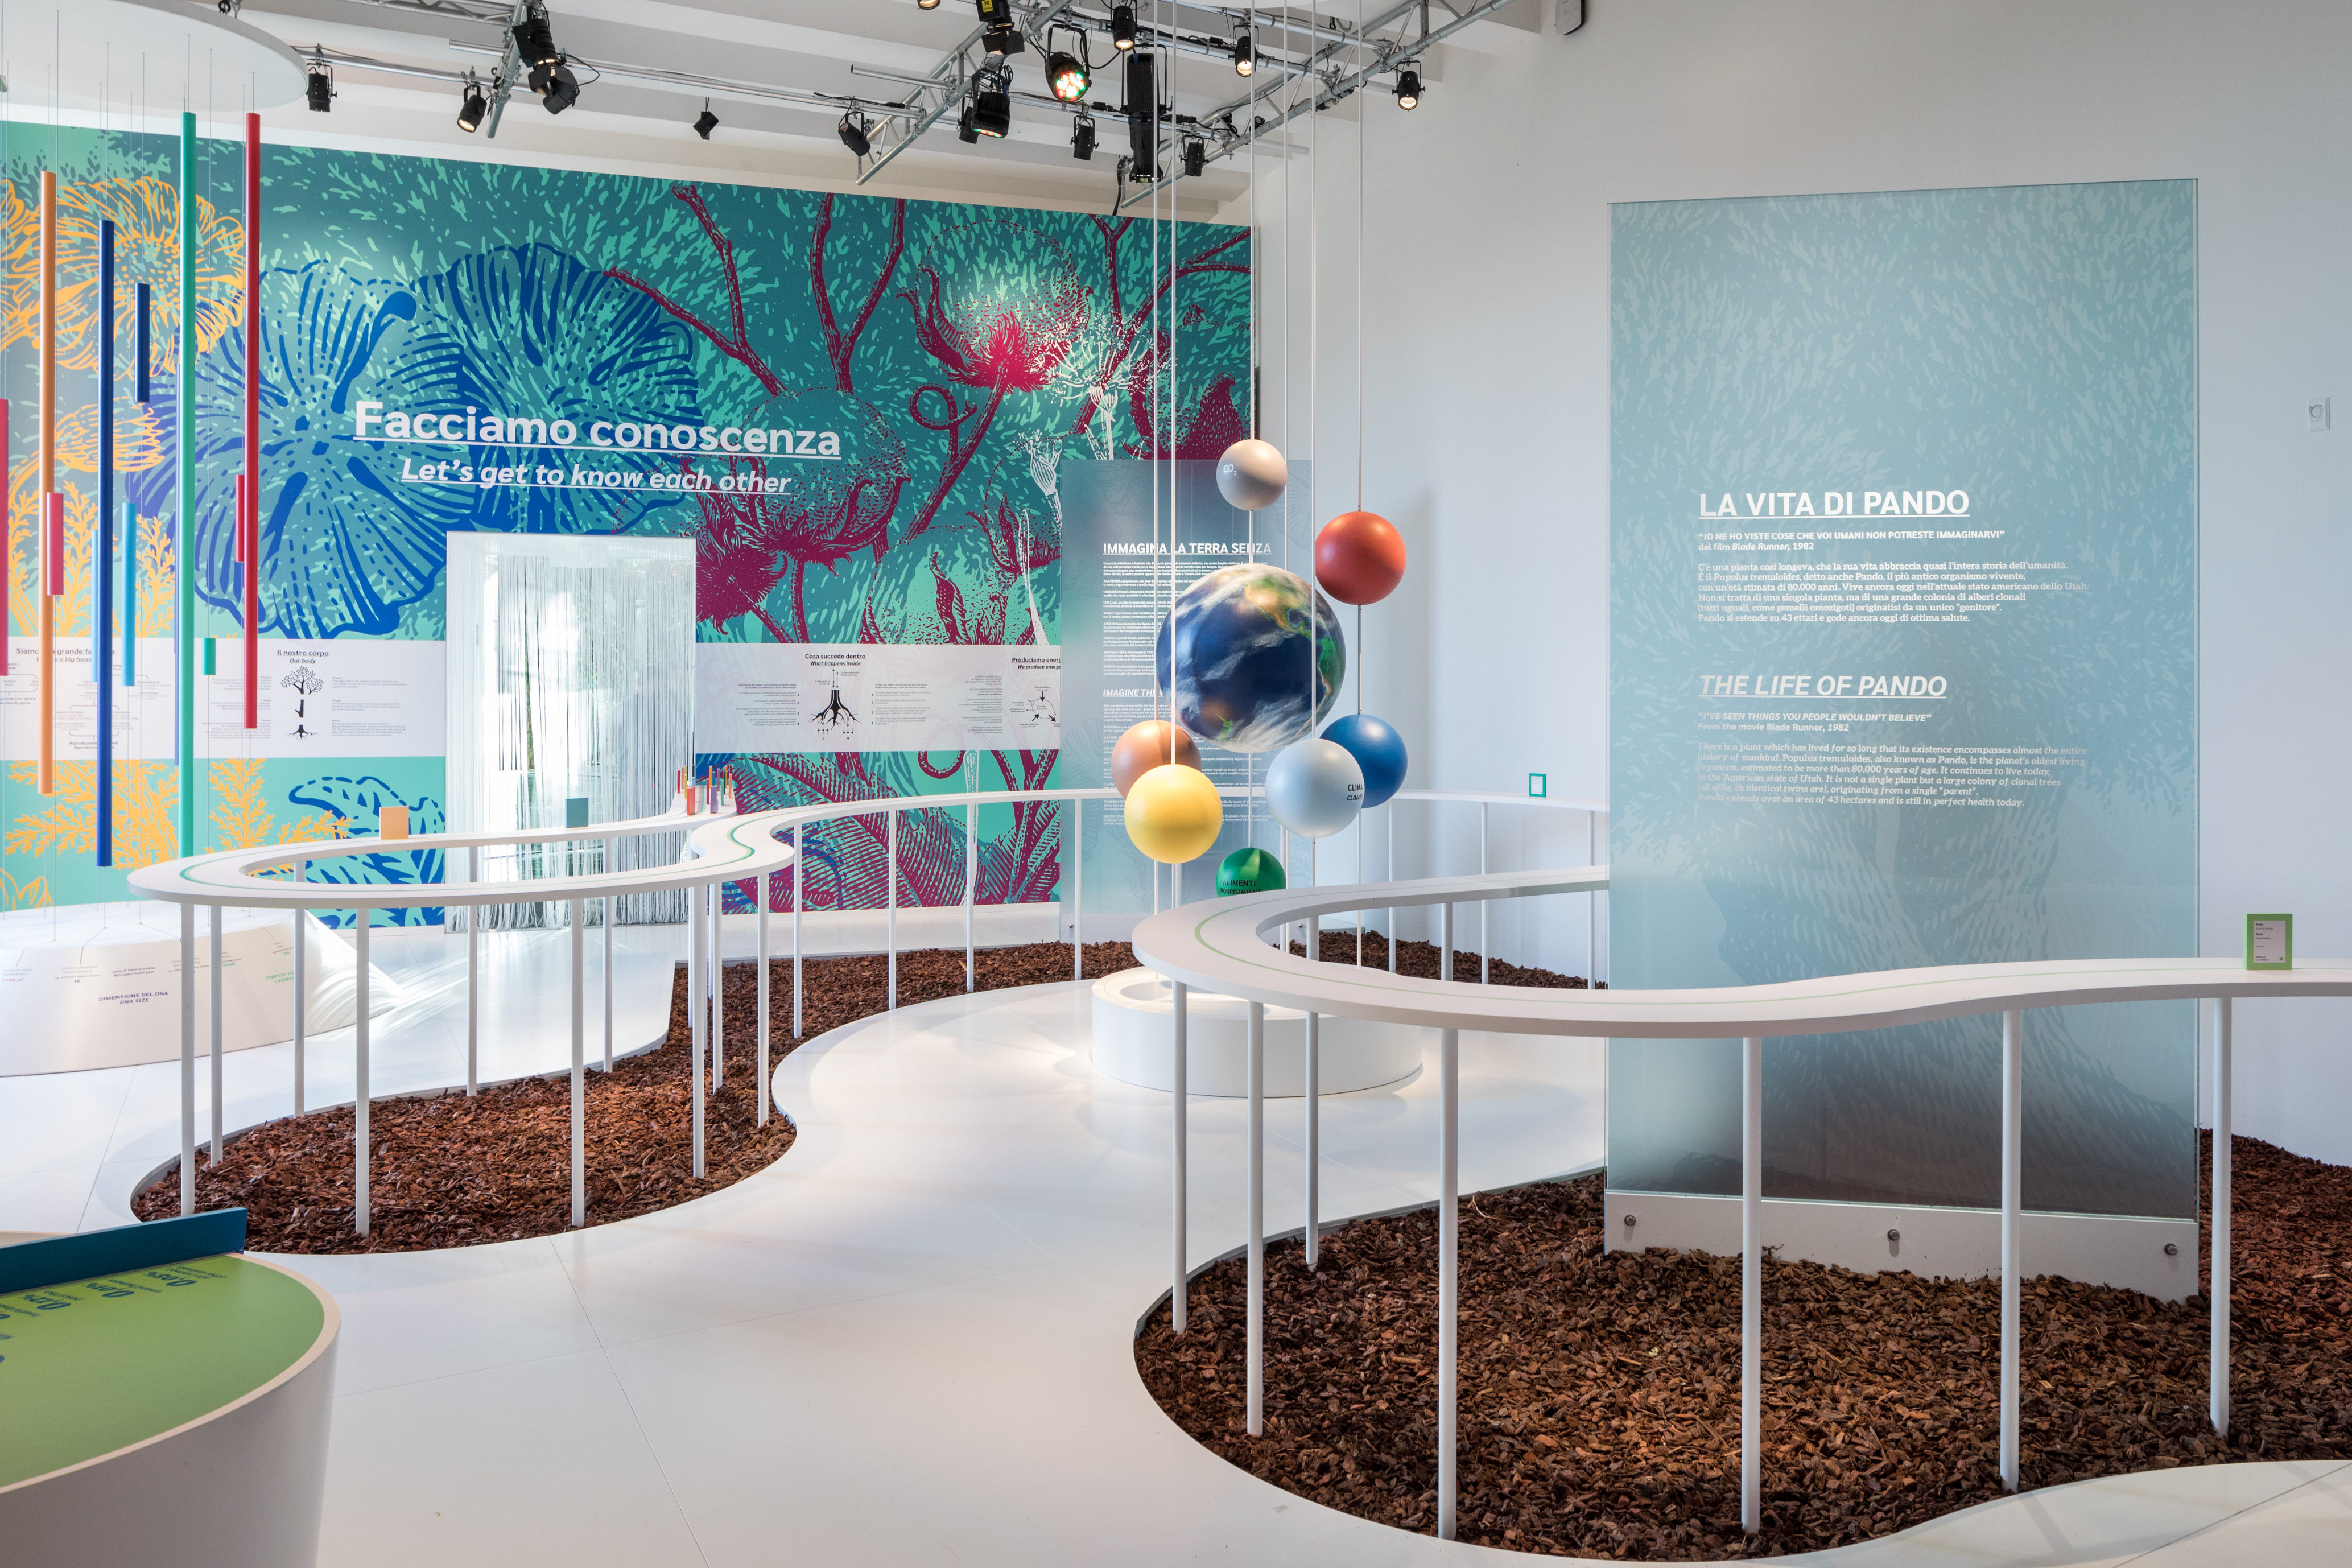 Photo of the first room of the Nation of Plants installation.